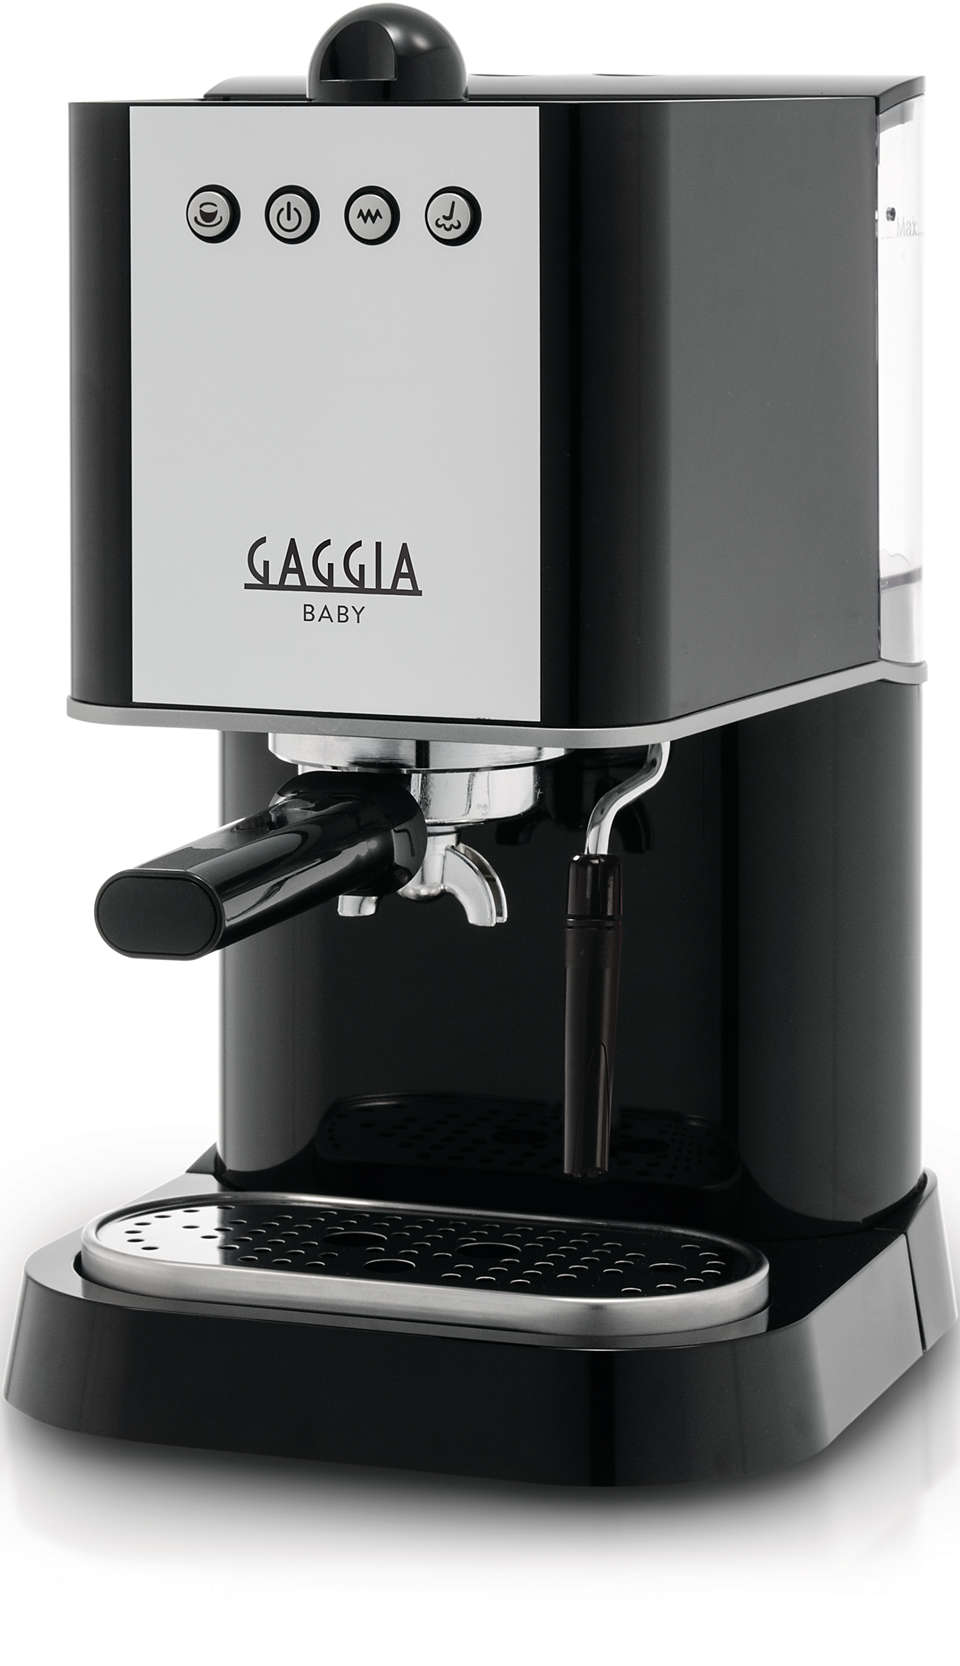 Gaggia's iconic model since 1977